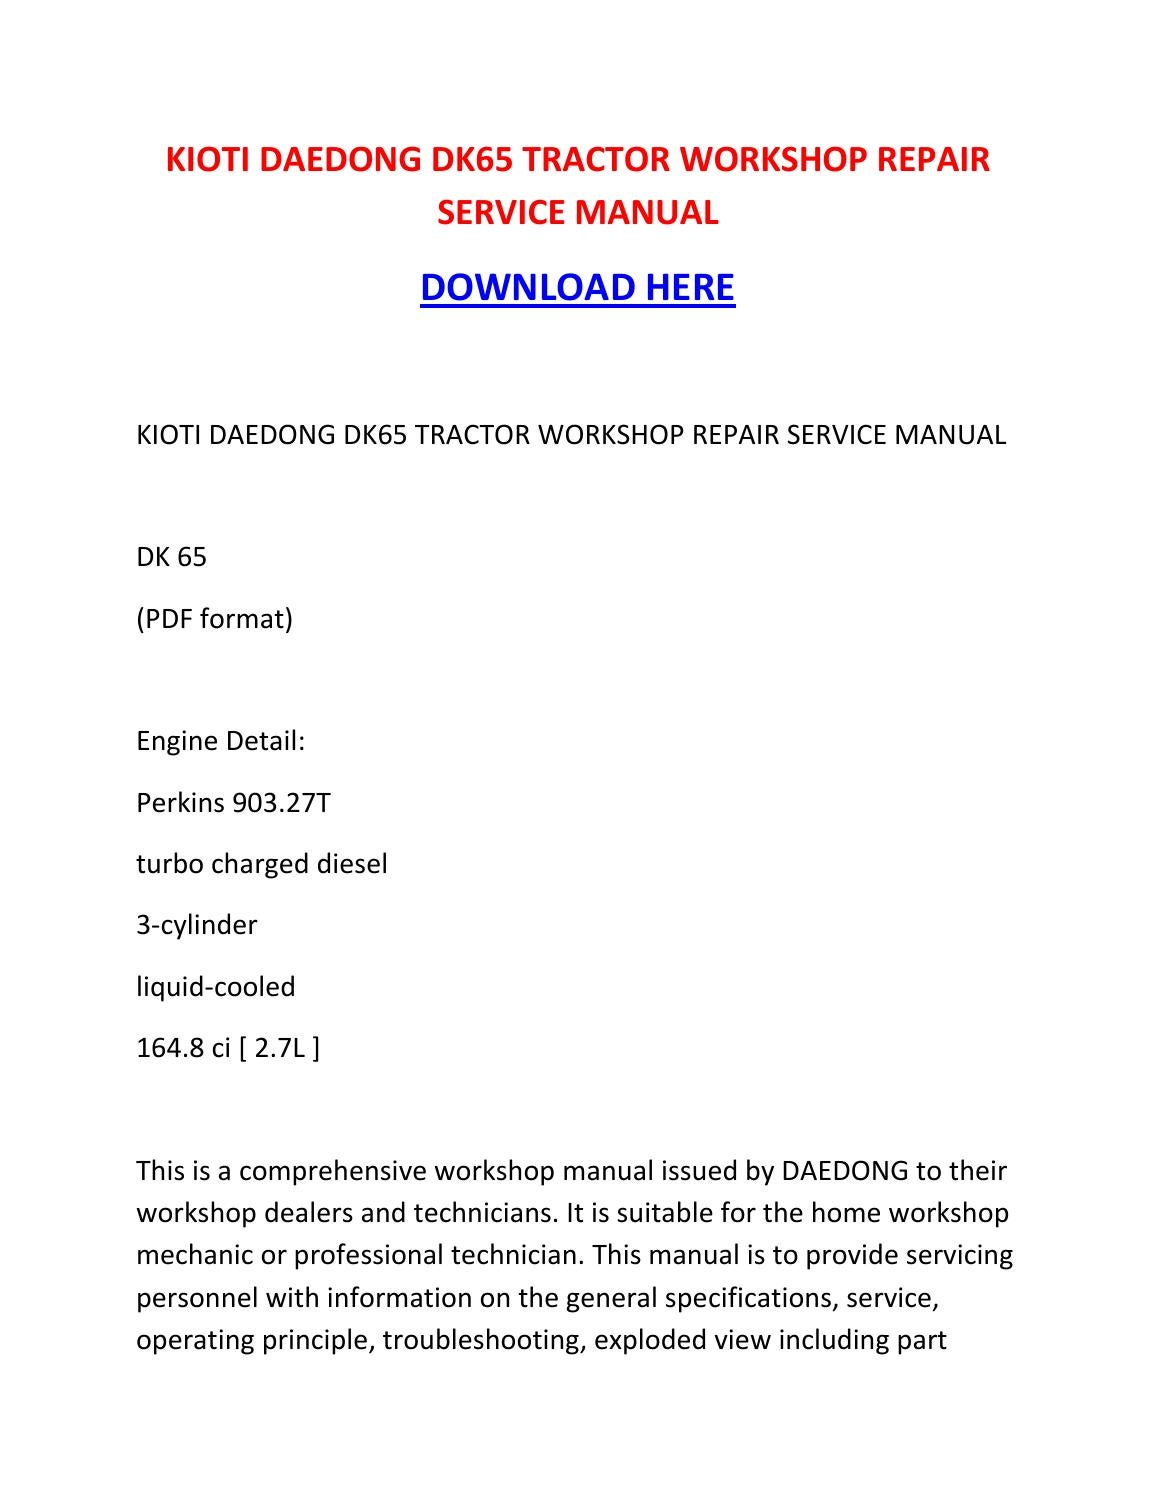 Kioti Daedong Dk65 Tractor Workshop Repair Service Manual